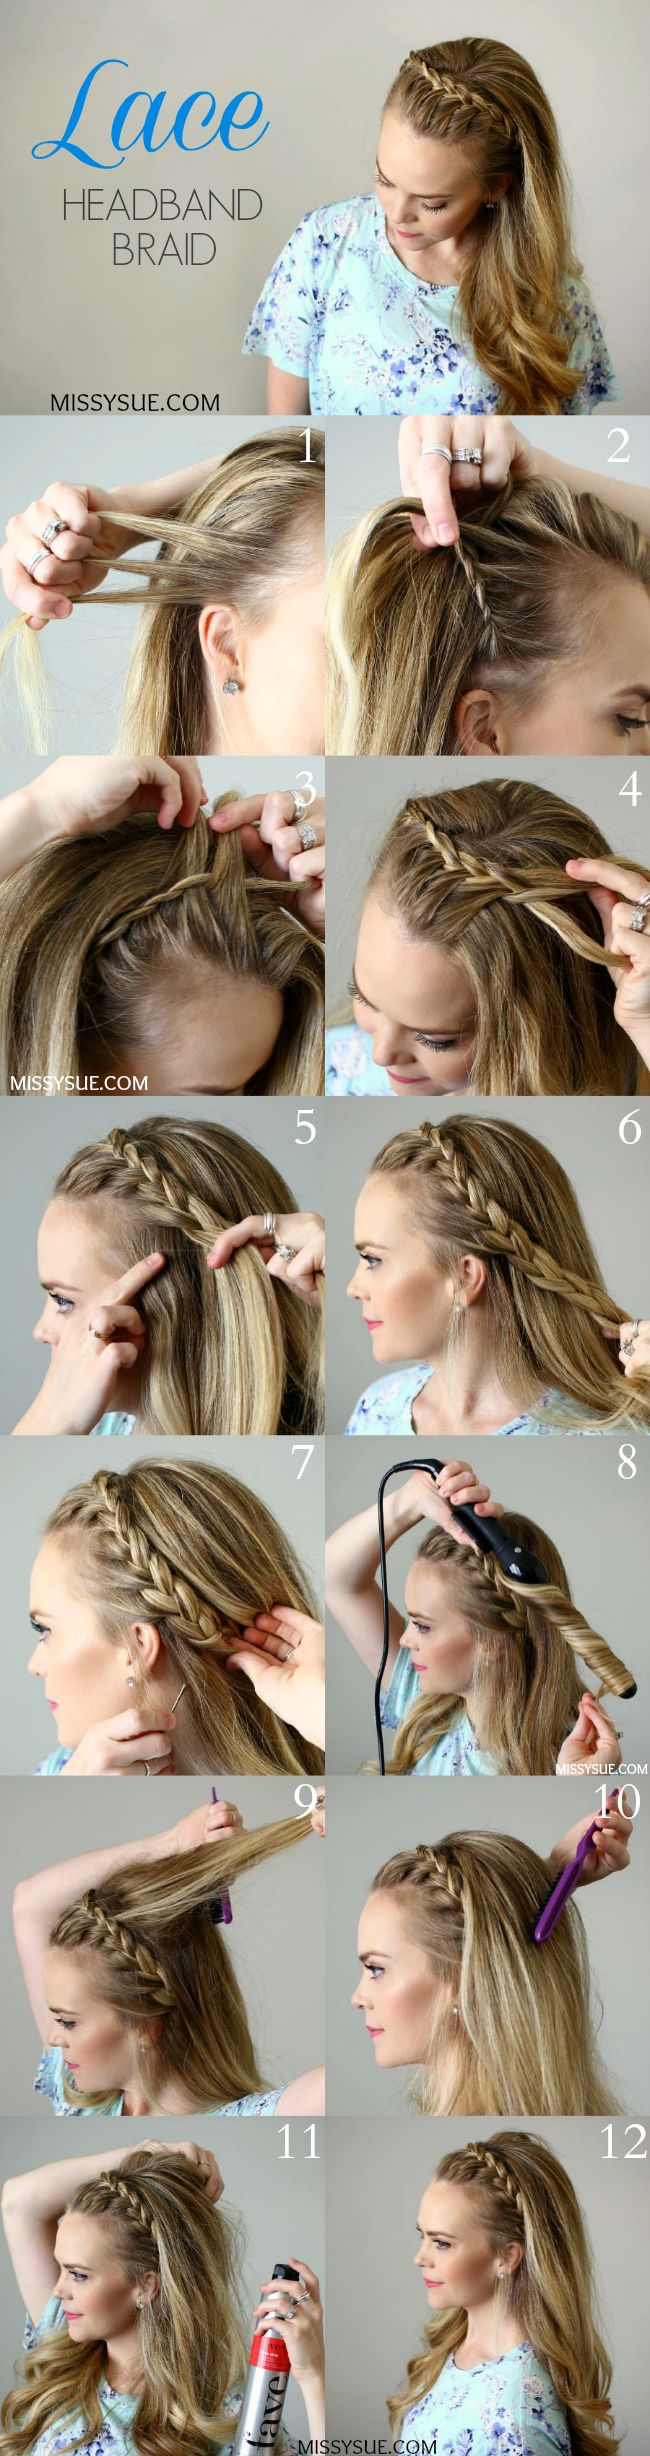 534 best hairstyles of the fine thin images on pinterest easy previous pinner said lace headband braid separate hair into baditri Image collections